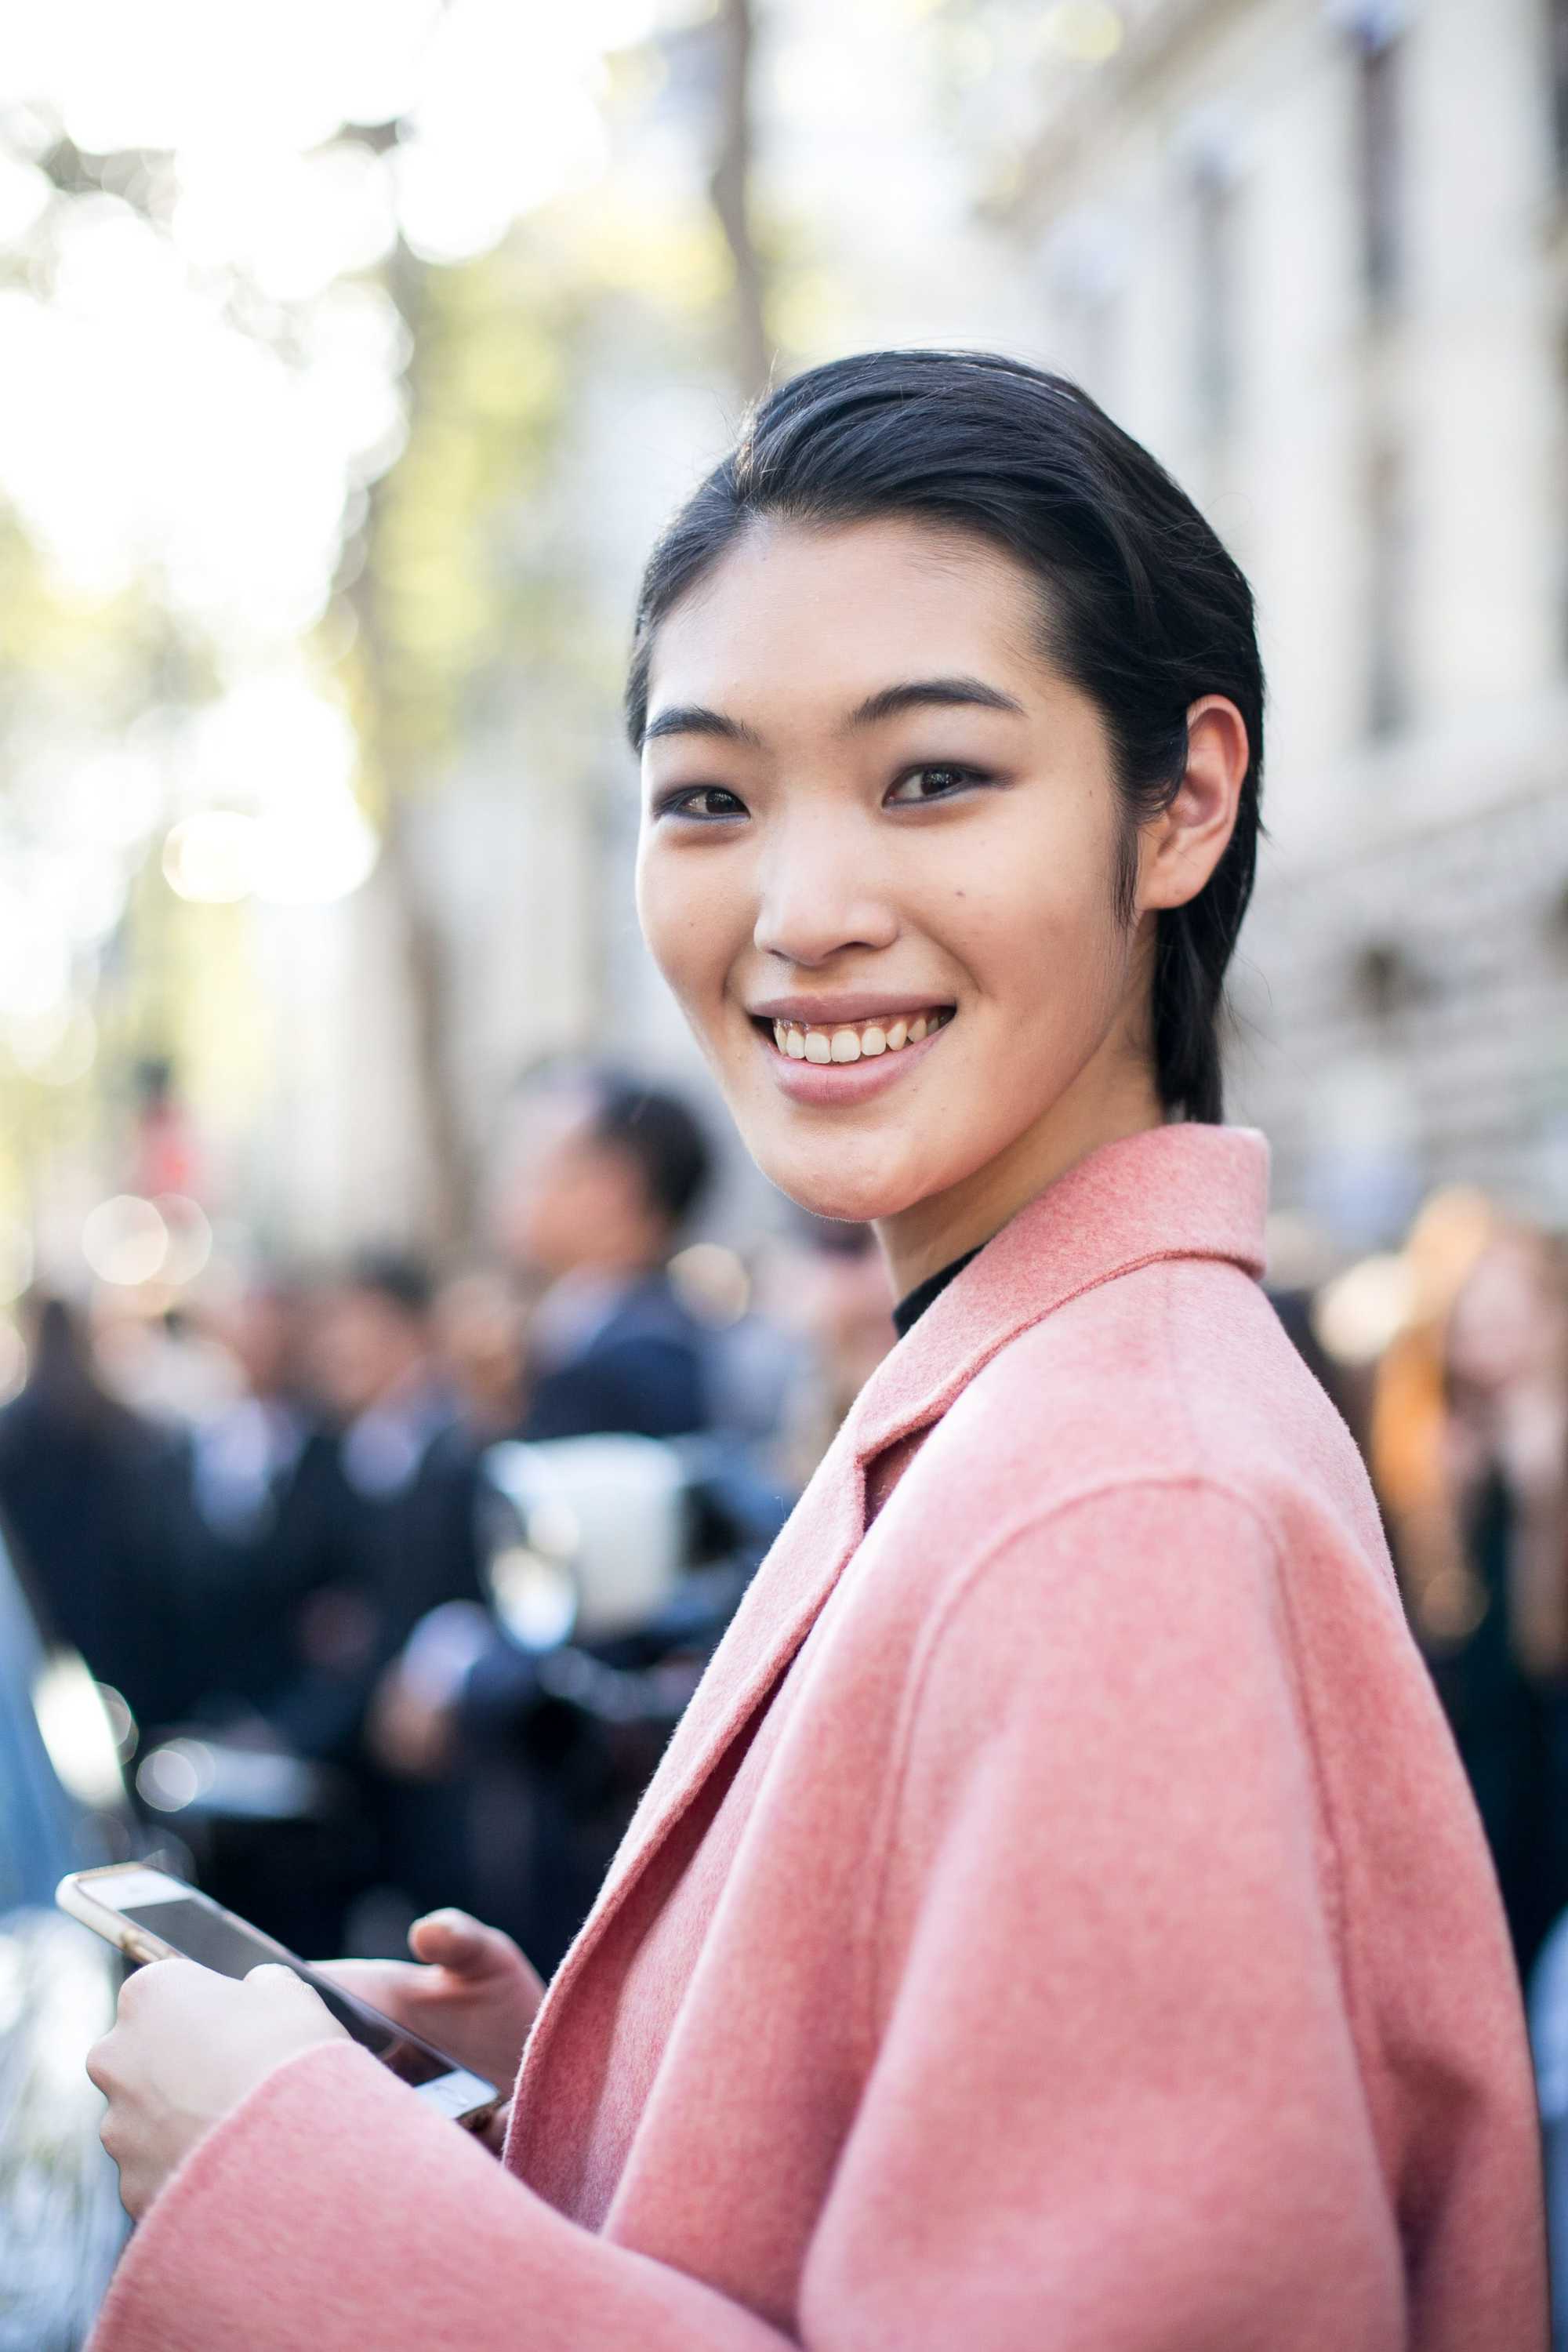 14 Trendy Short Hair Ideas To Inspire Your New Look Intended For Short Hairstyle For Asian Girl (View 23 of 25)